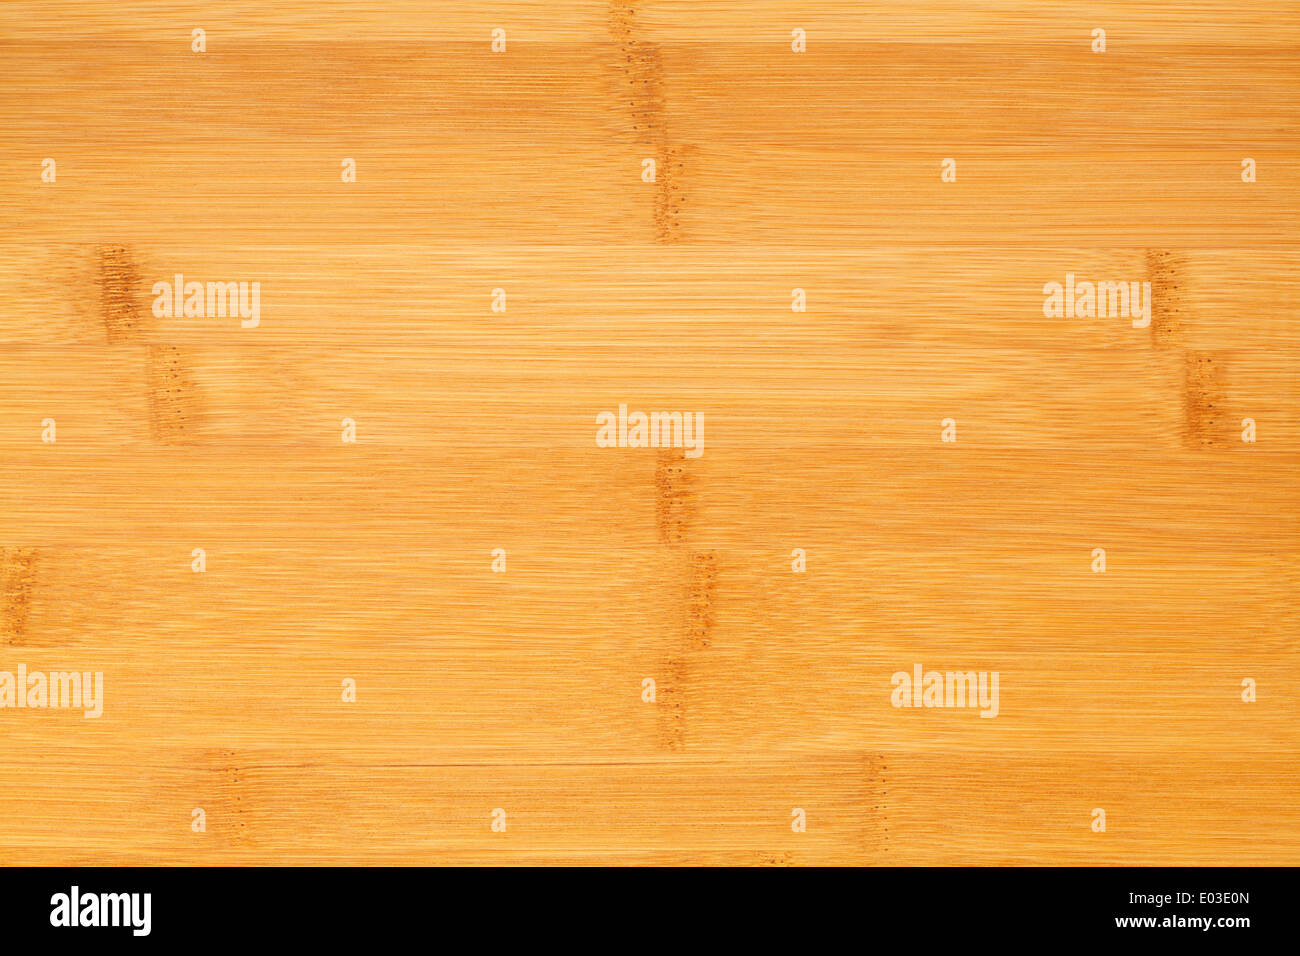 Clean Bamboo Wood Cutting Board Background with Copy Space. - Stock Image